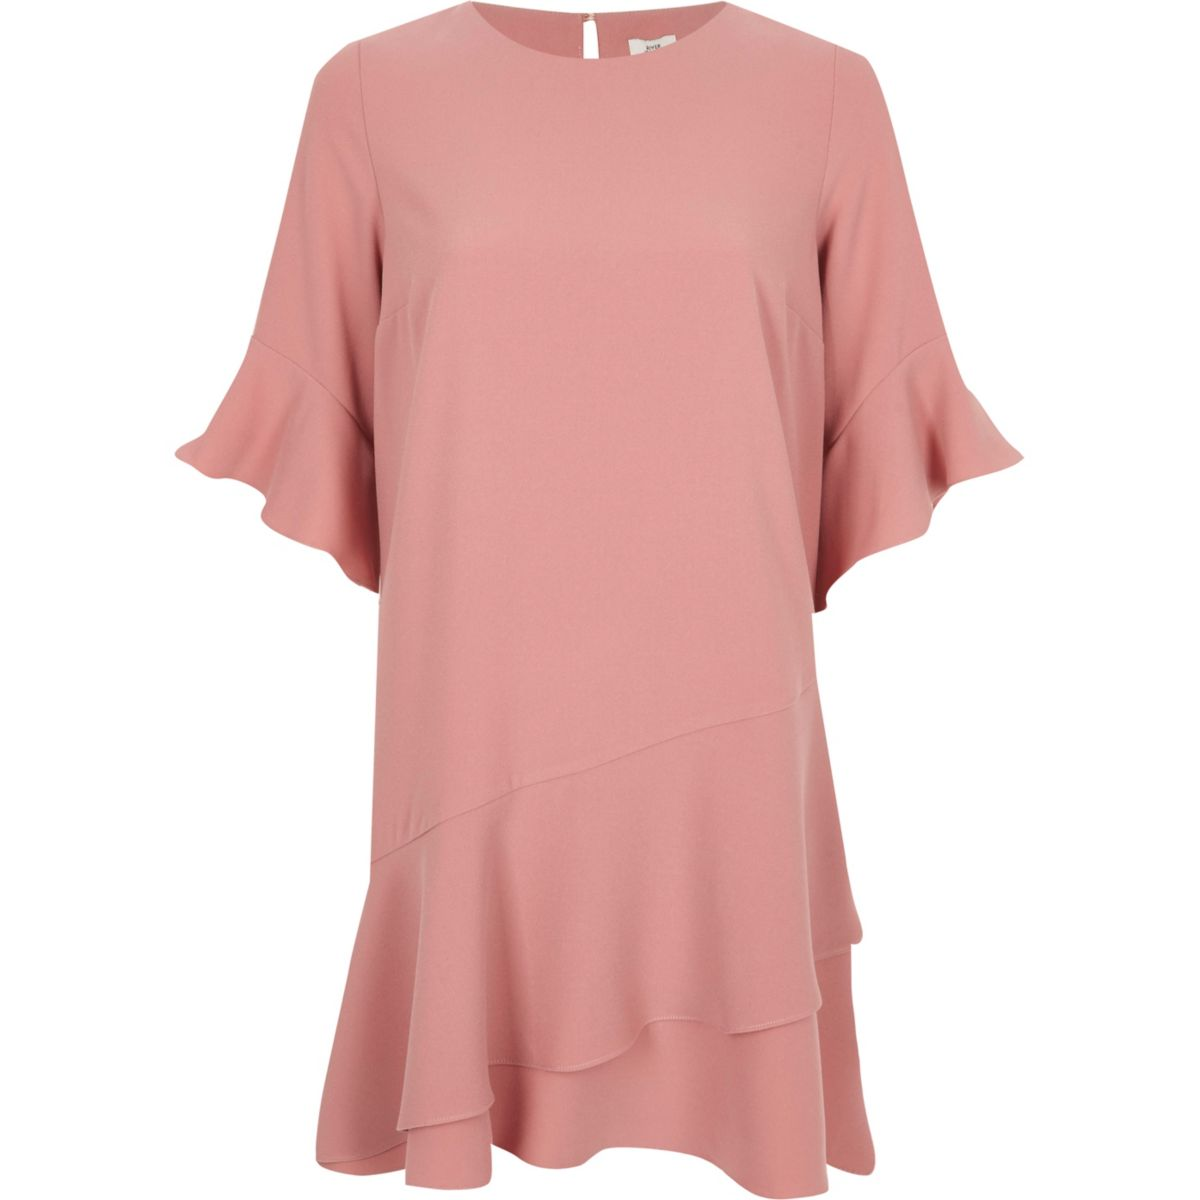 Light pink frill peplum hem swing dress